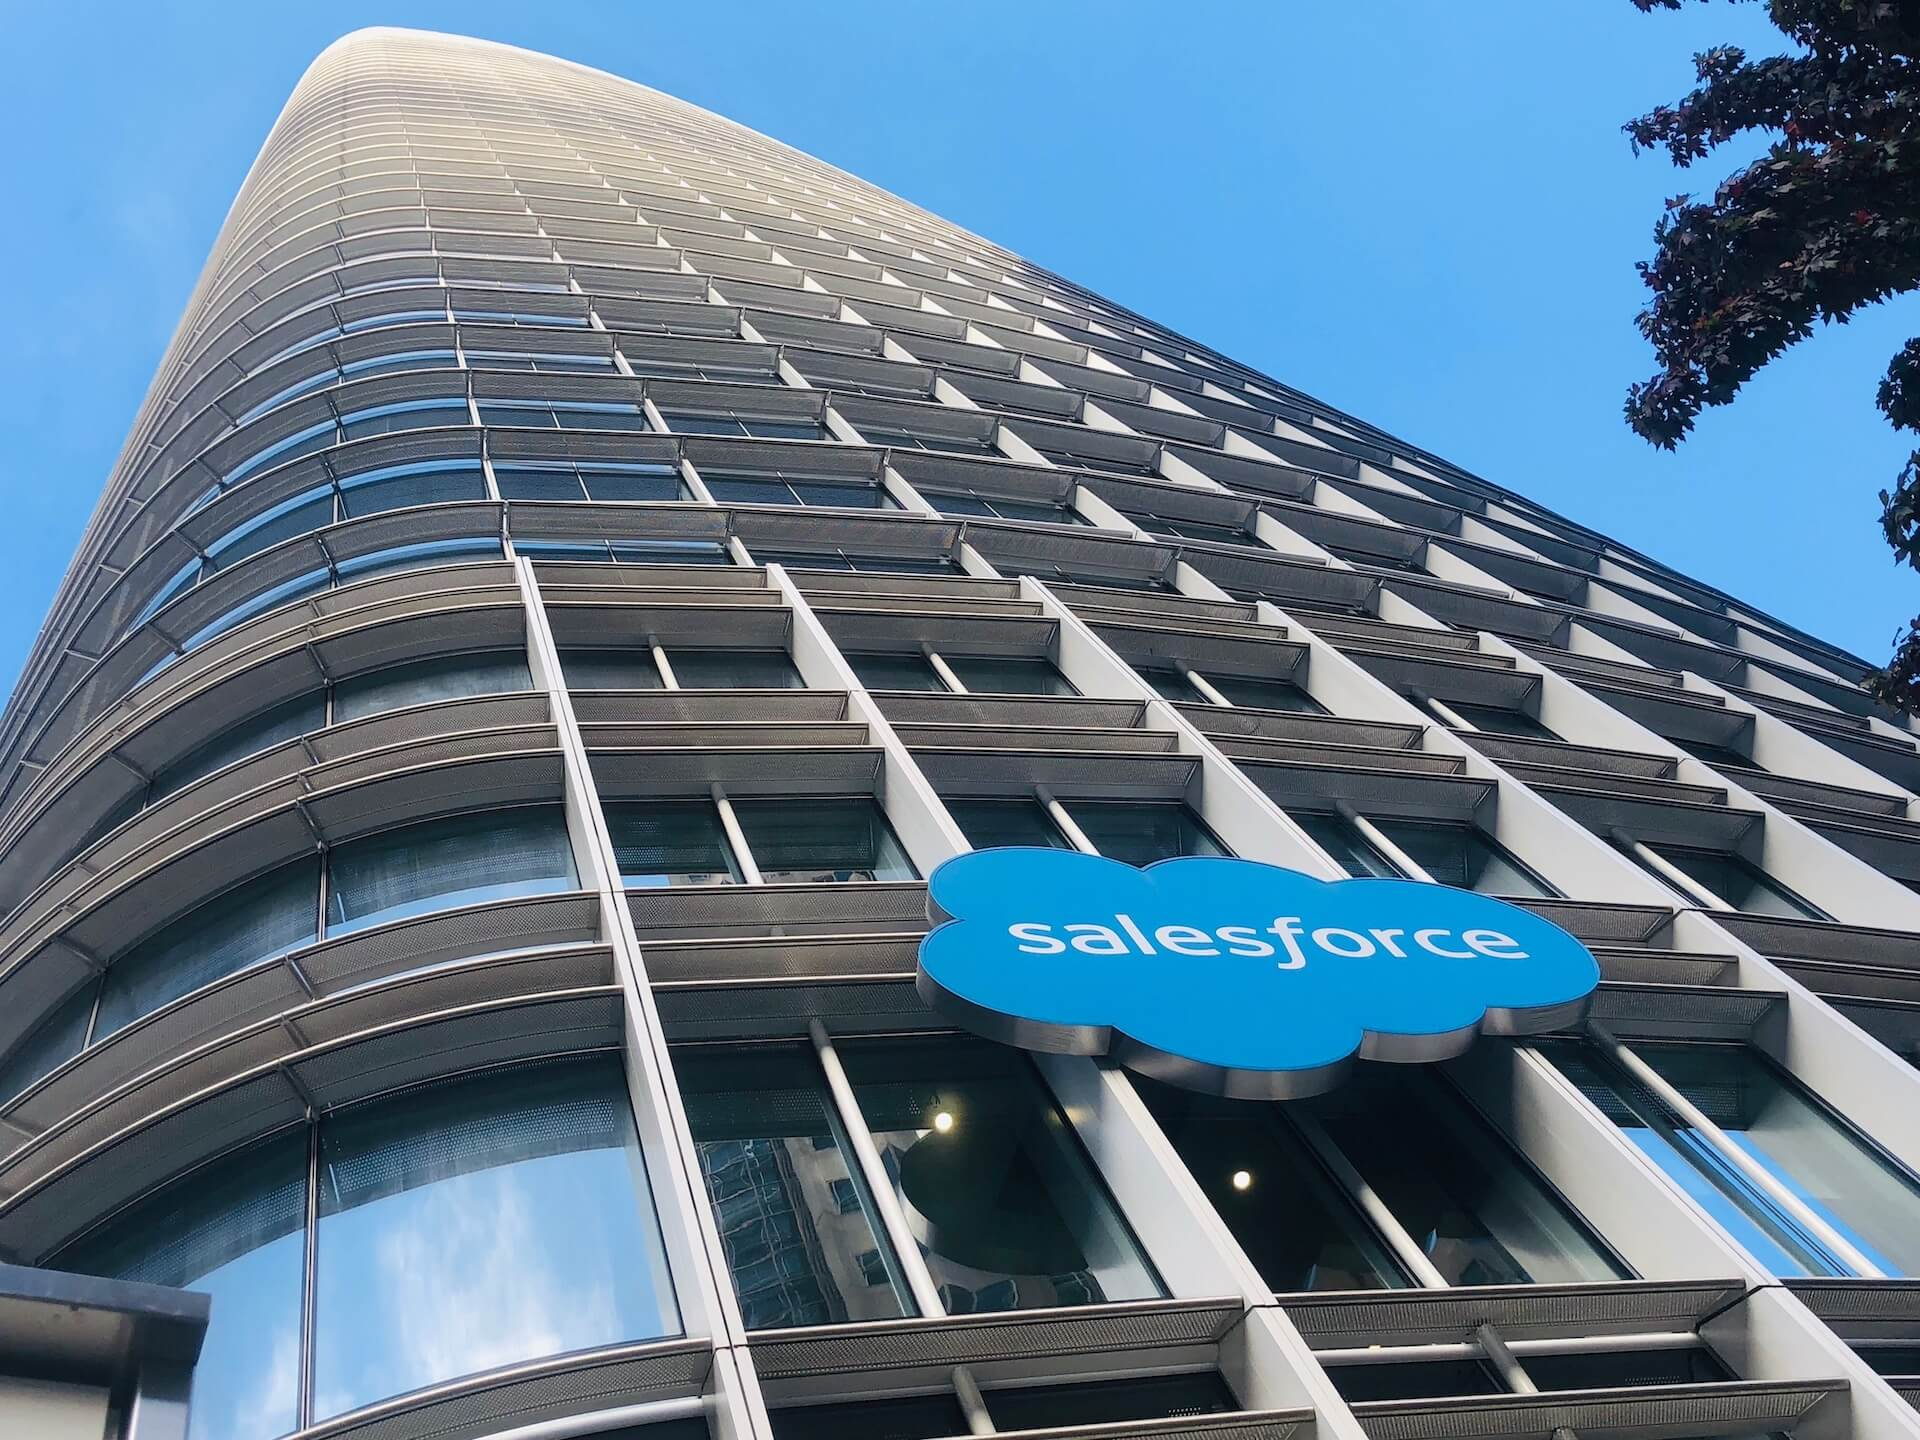 Salesforce's Pardot went down for 15 hours, exposing data in the cloud